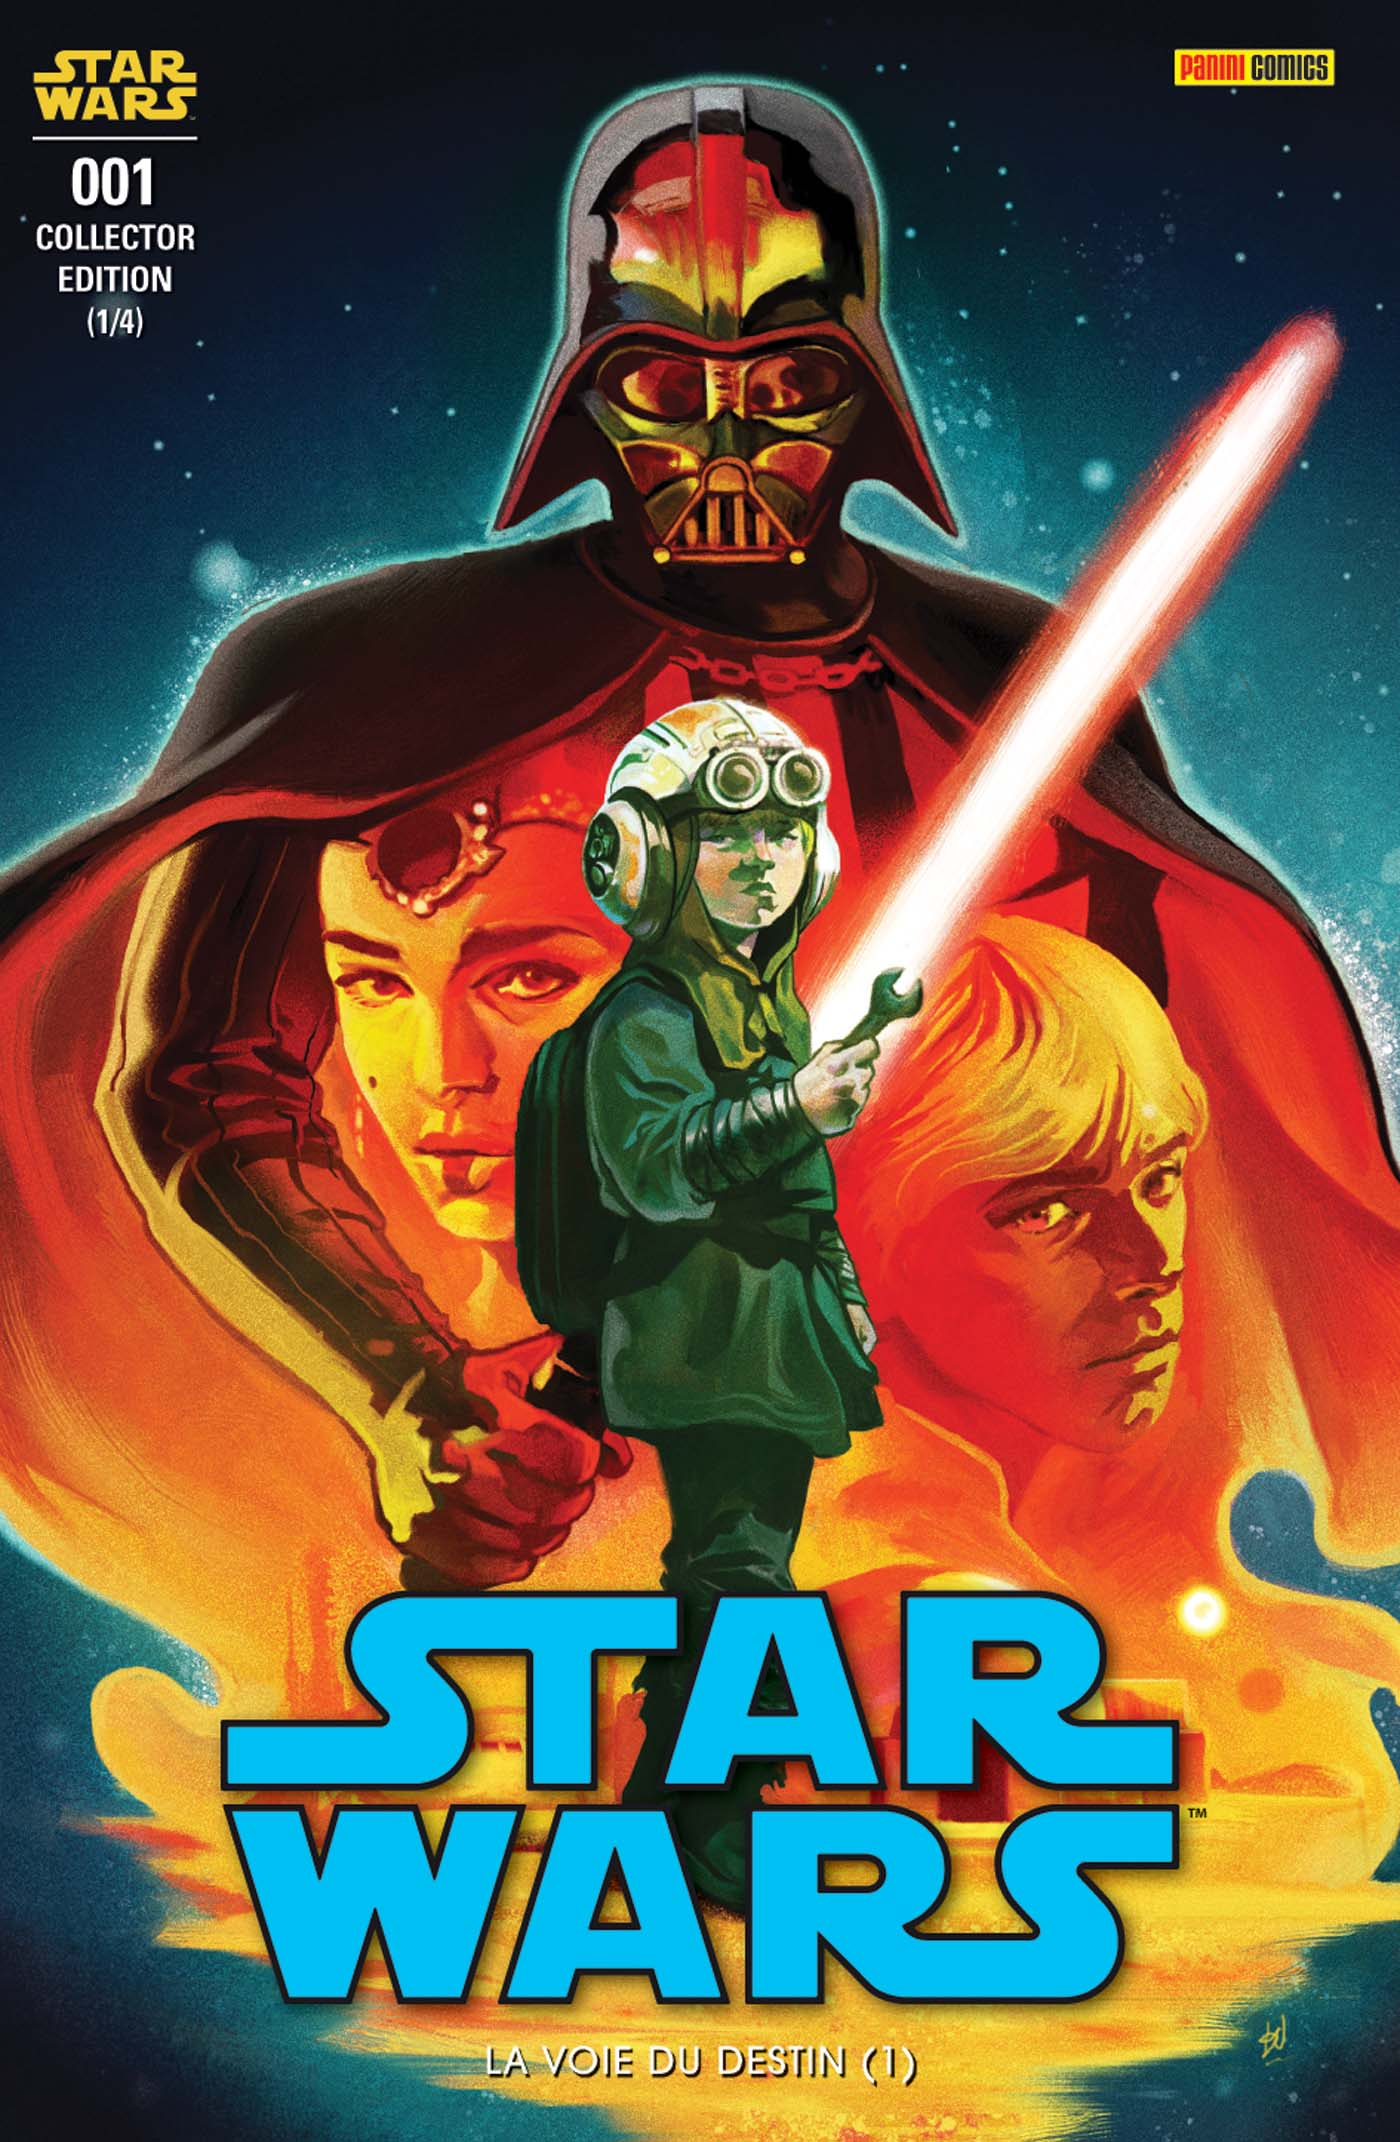 Star Wars 1 - Couverture collector 1/4